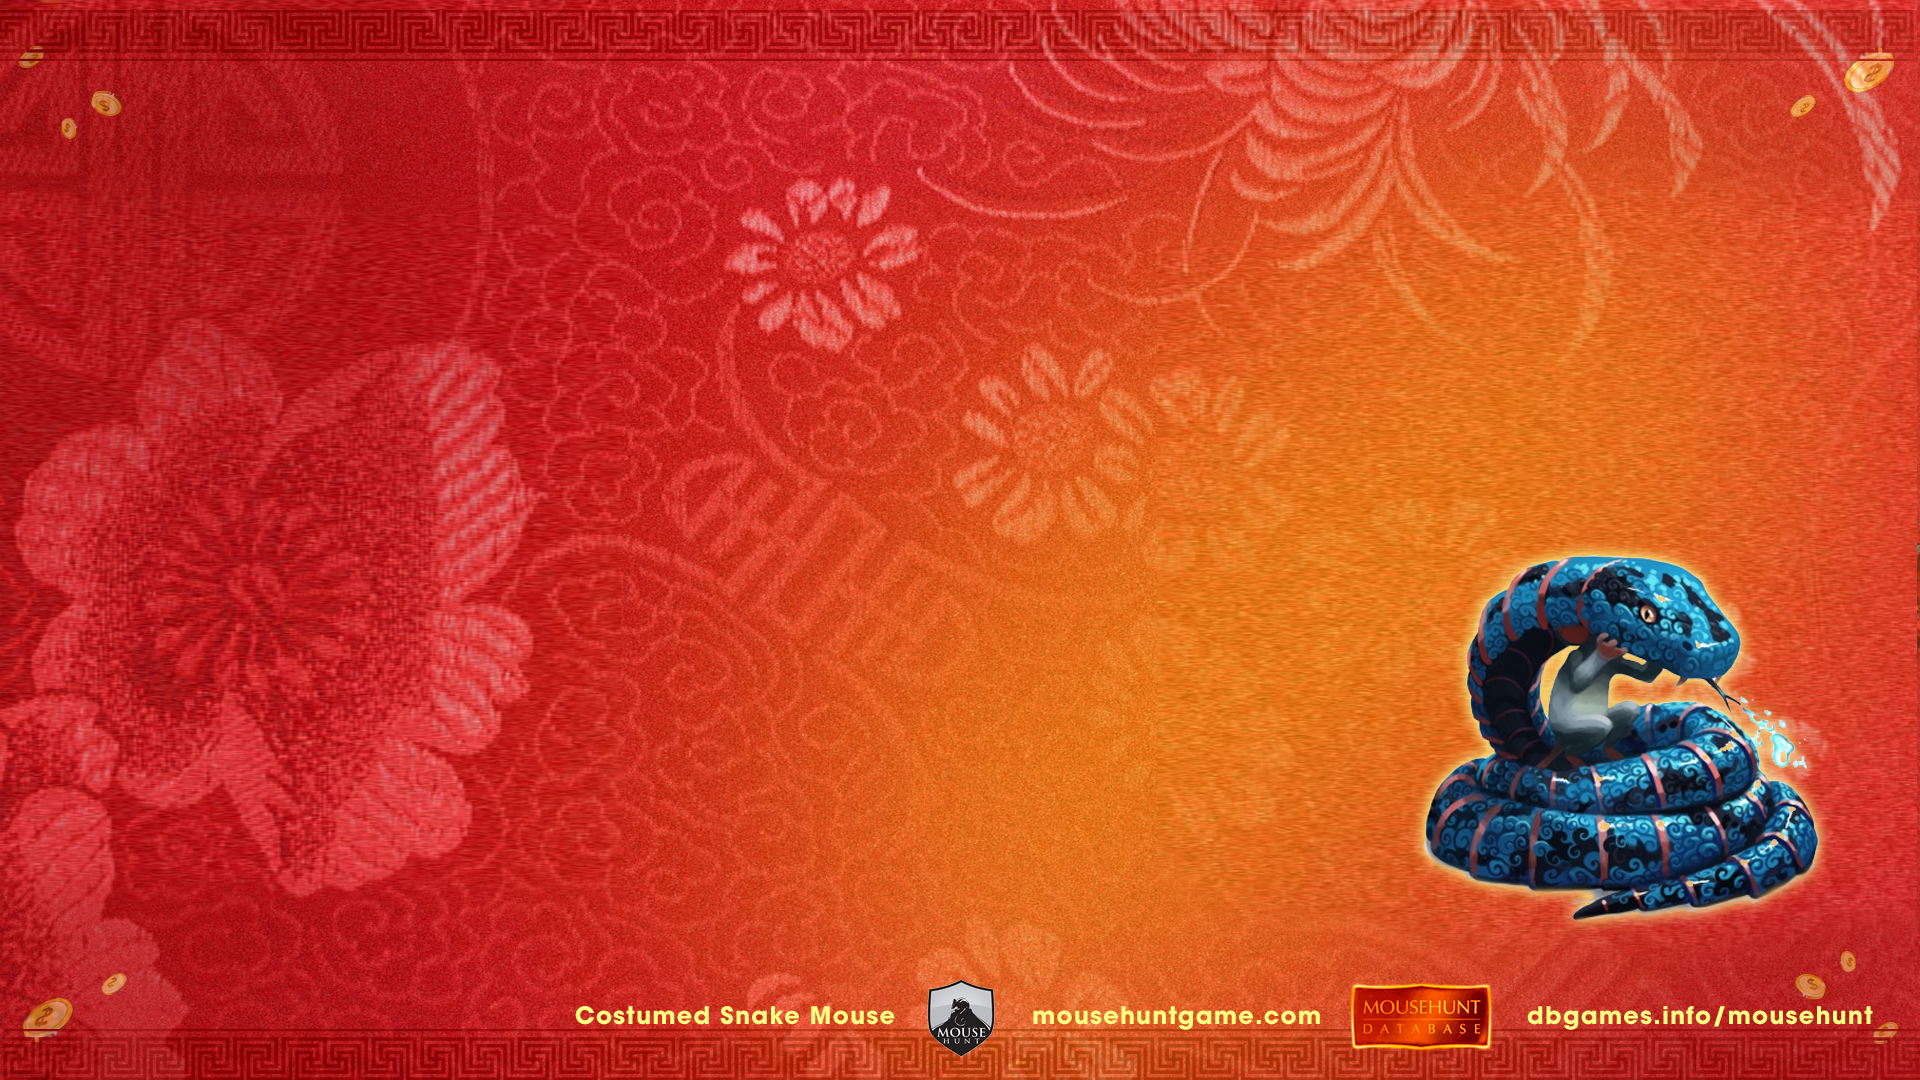 Costumed Snake Mouse of Mousehunt - Lunar New Year 2013